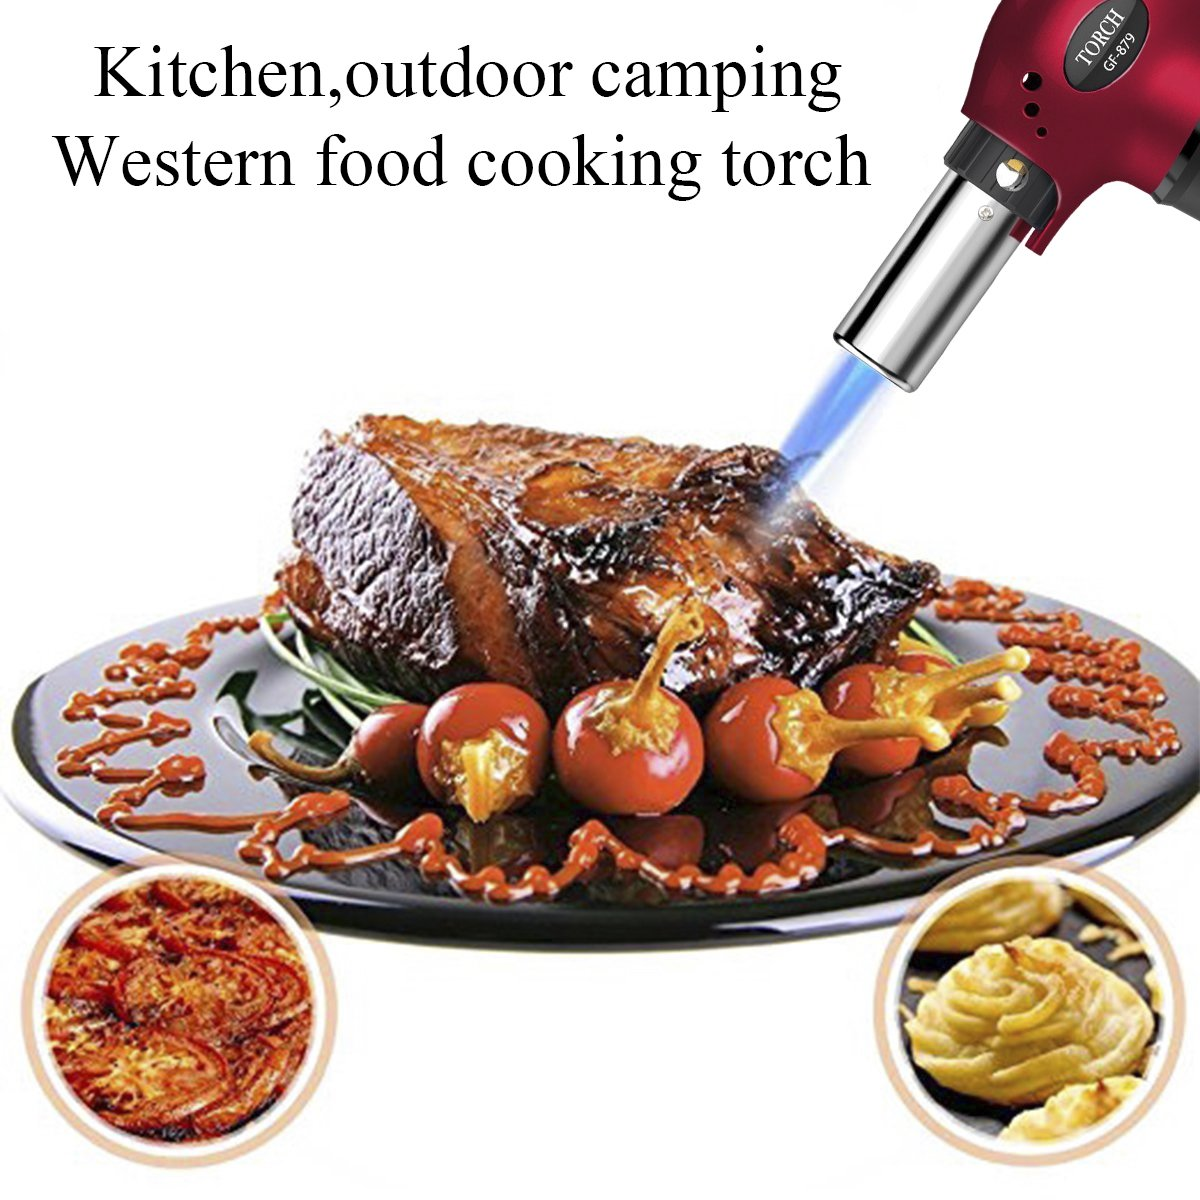 Blow Torch, Refillable Cooking Kitchen Butane Torch Lighter With Safety Lock & Adjustable Flame Perfect for Pastries, Desserts, Brazing, Soldering, Welding, Melting, Heating, Peeling & More by Semdisan (Image #3)